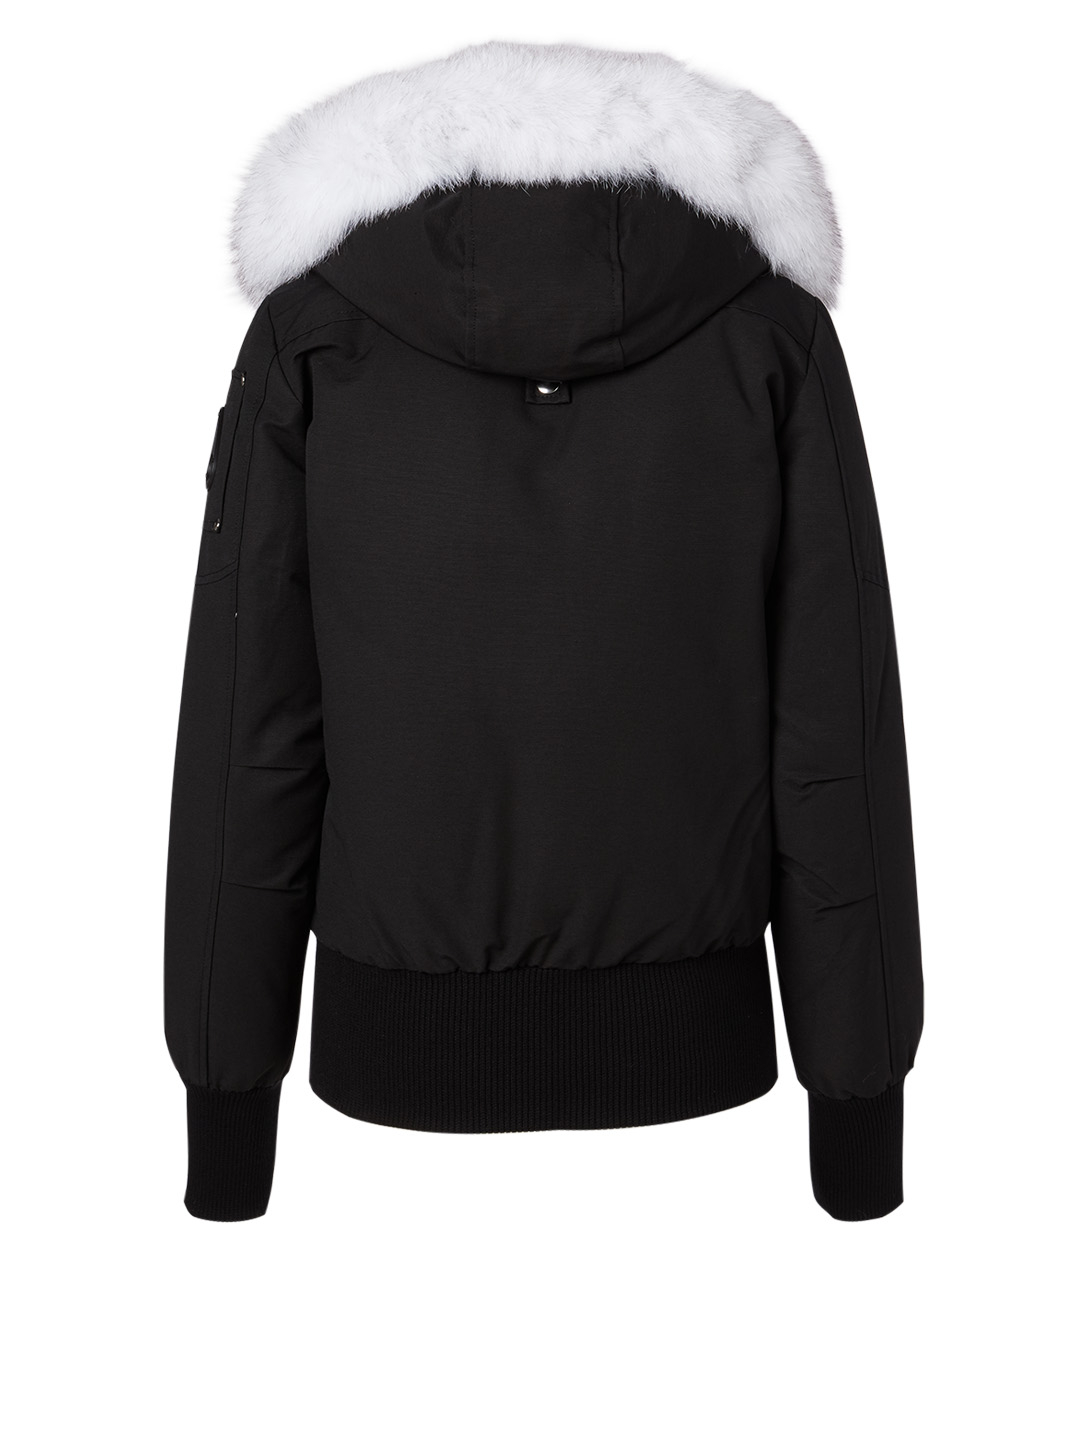 MOOSE KNUCKLES Debbie Down Jacket With Fur Hood Women's Black